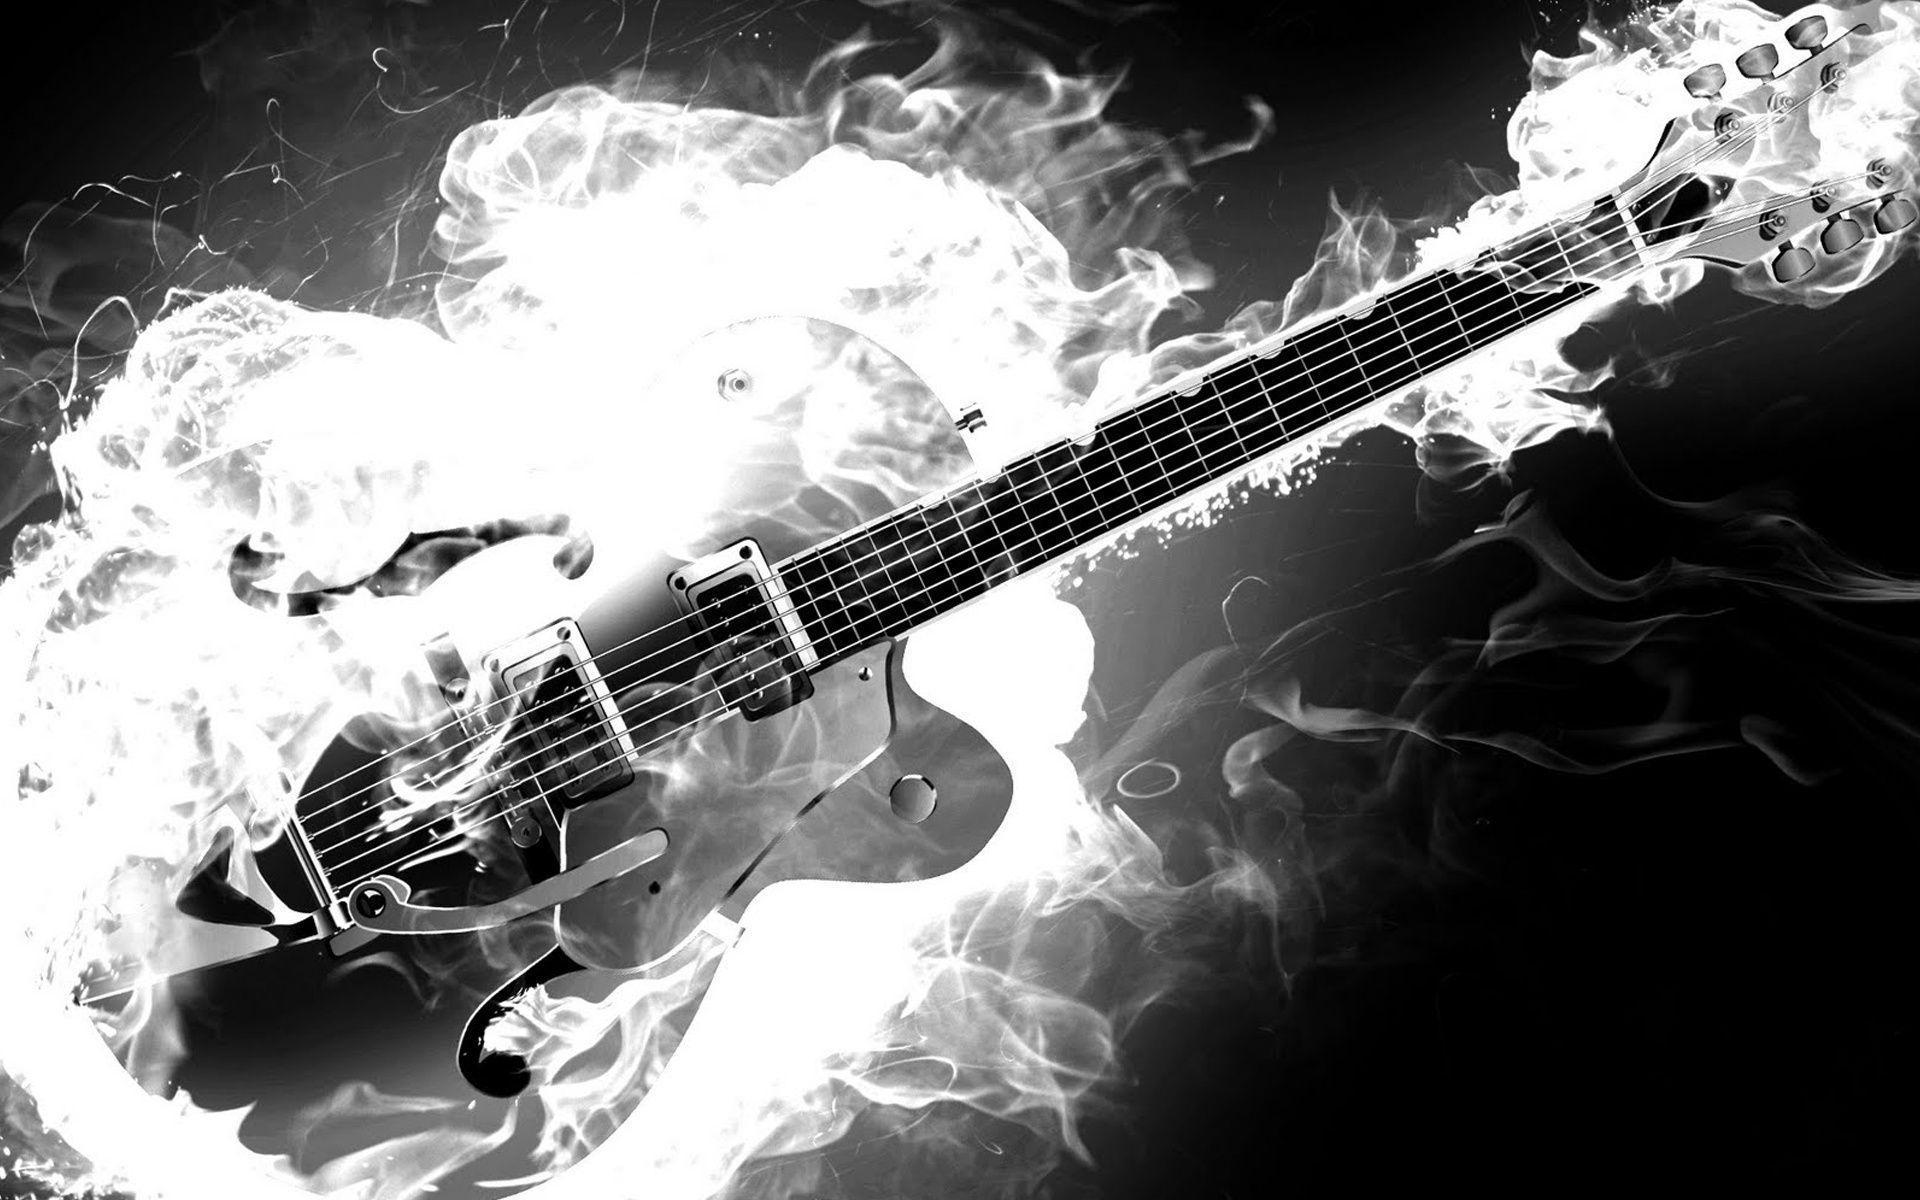 Guitar Image Free 151581 High Definition Wallpapers